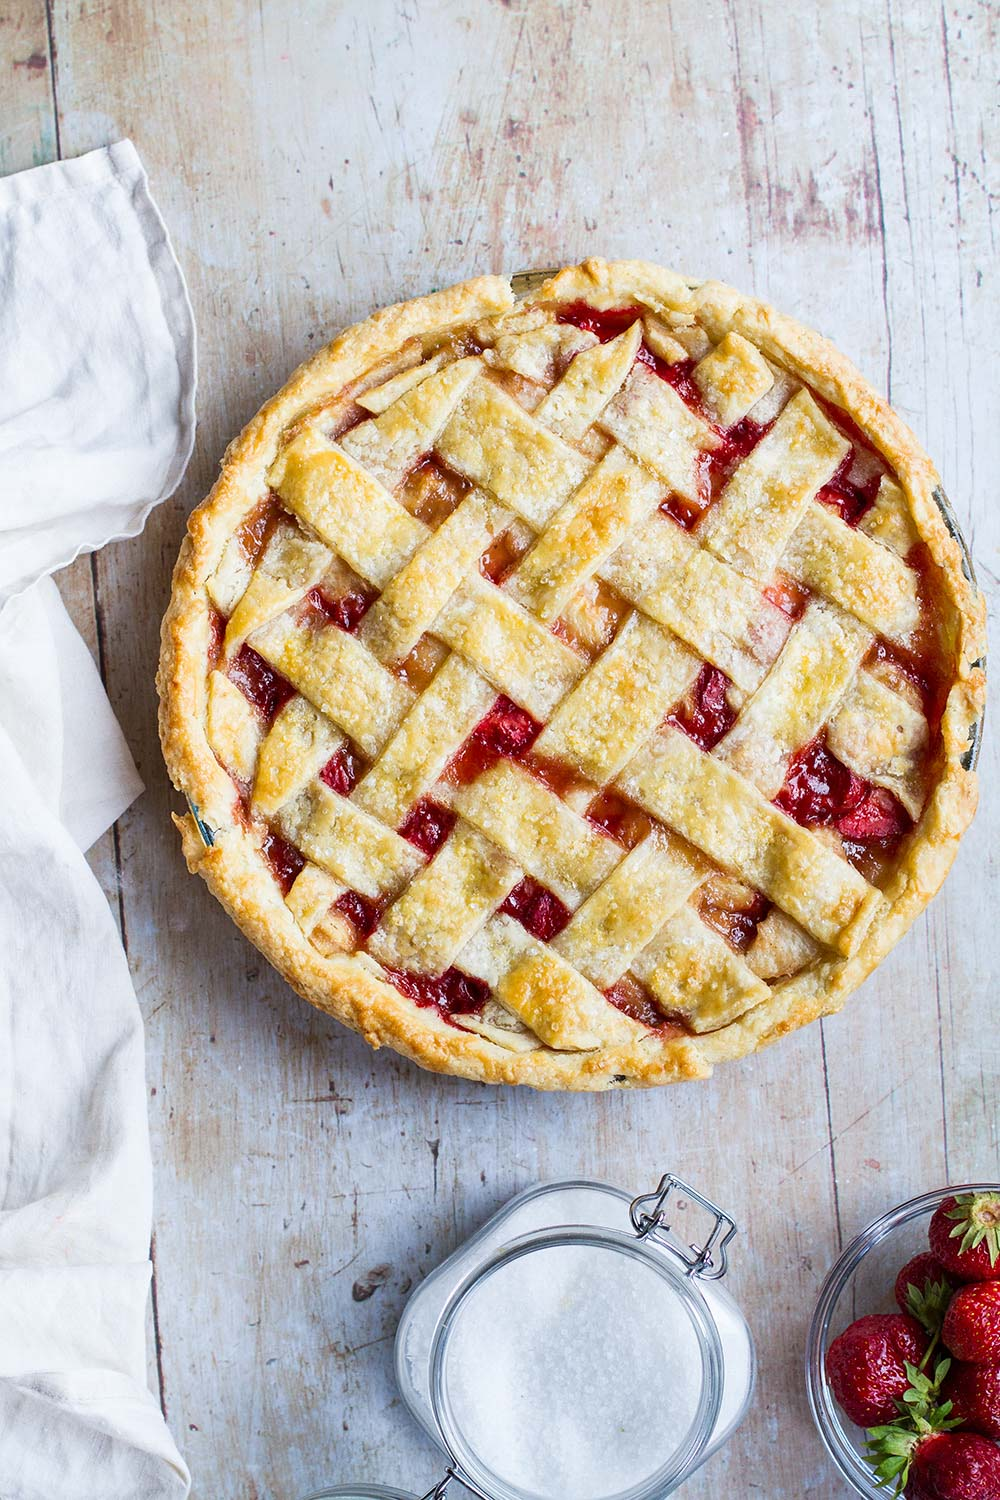 Strawberry peach pie seen from above.